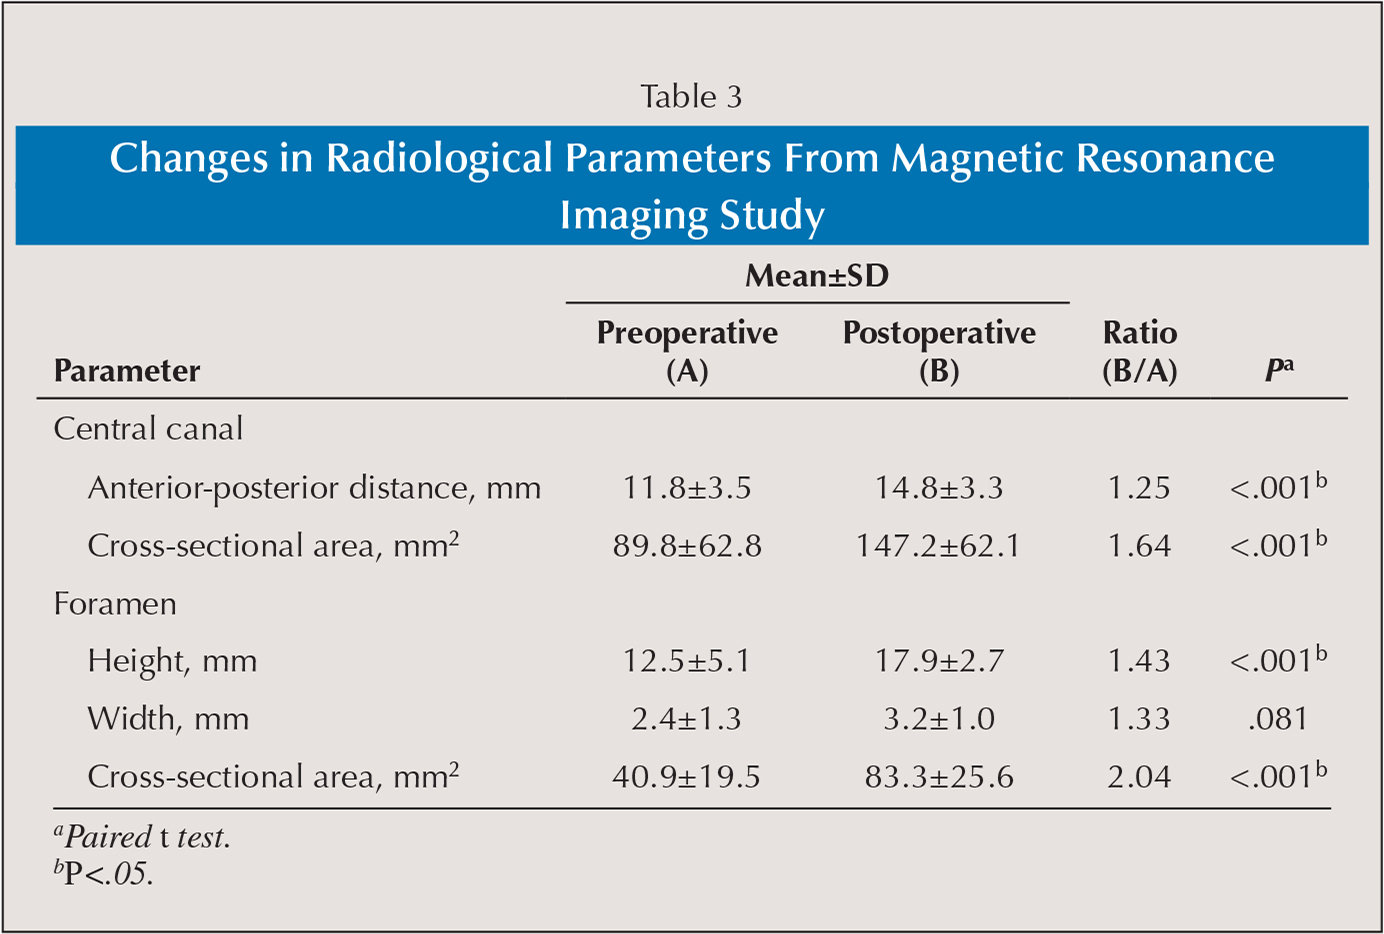 Changes in Radiological Parameters From Magnetic Resonance Imaging Study